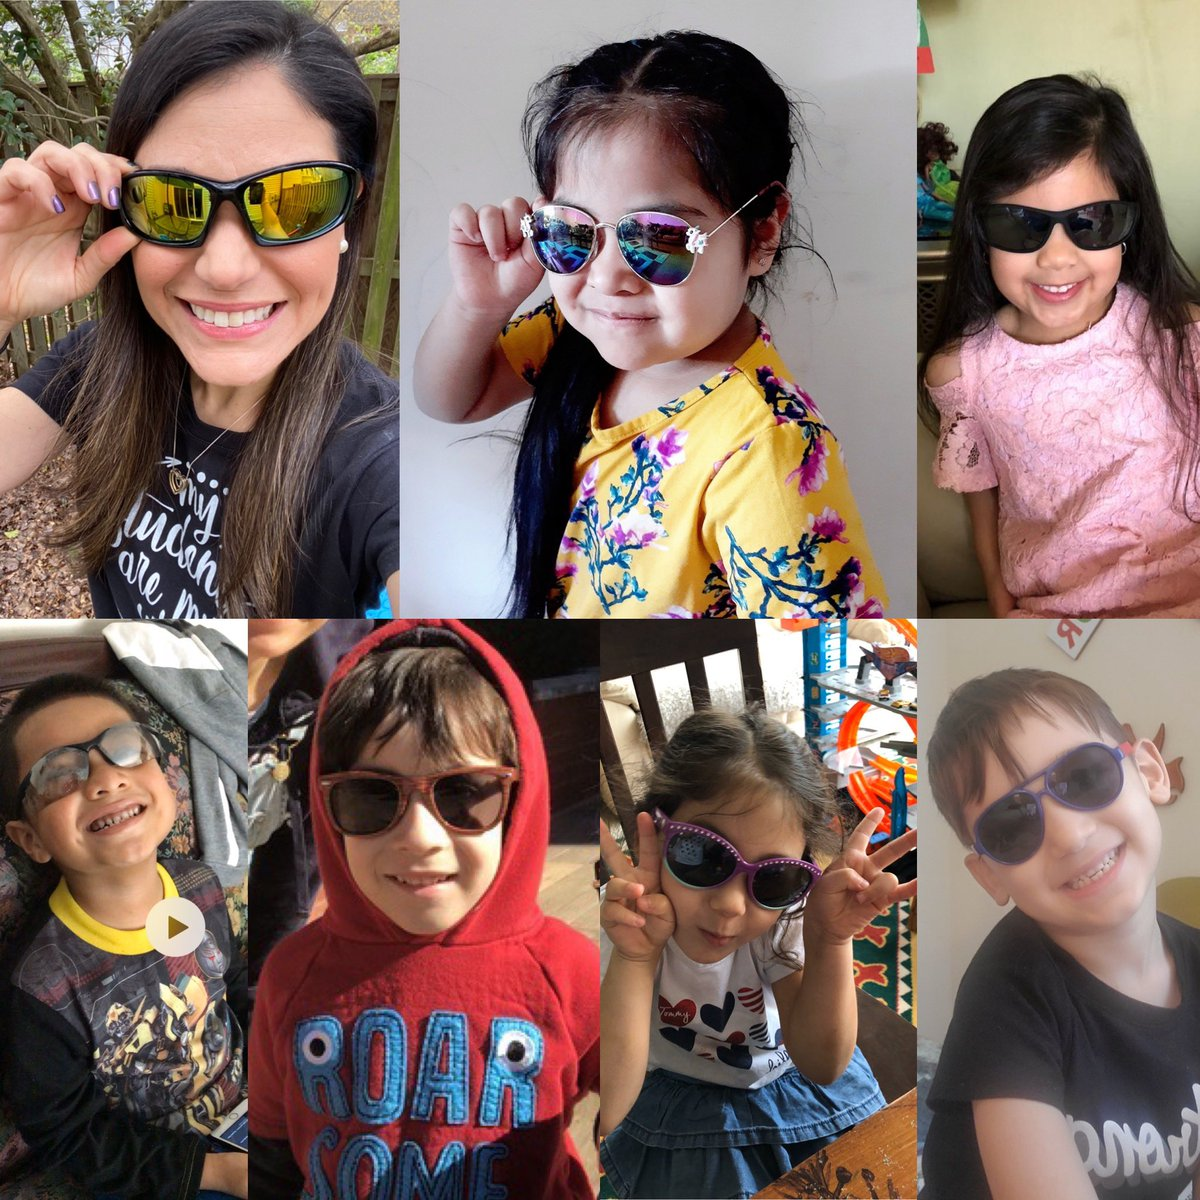 """RT <a target='_blank' href='http://twitter.com/SraMSerrano'>@SraMSerrano</a>: Today is """"Sunglass Selfie"""" and my Super Stars are shining! ✴️🌟 😎<a target='_blank' href='http://twitter.com/APS_EarlyChild'>@APS_EarlyChild</a> <a target='_blank' href='http://twitter.com/KeySchoolAPS'>@KeySchoolAPS</a> <a target='_blank' href='https://t.co/OYOA2vacGl'>https://t.co/OYOA2vacGl</a>"""